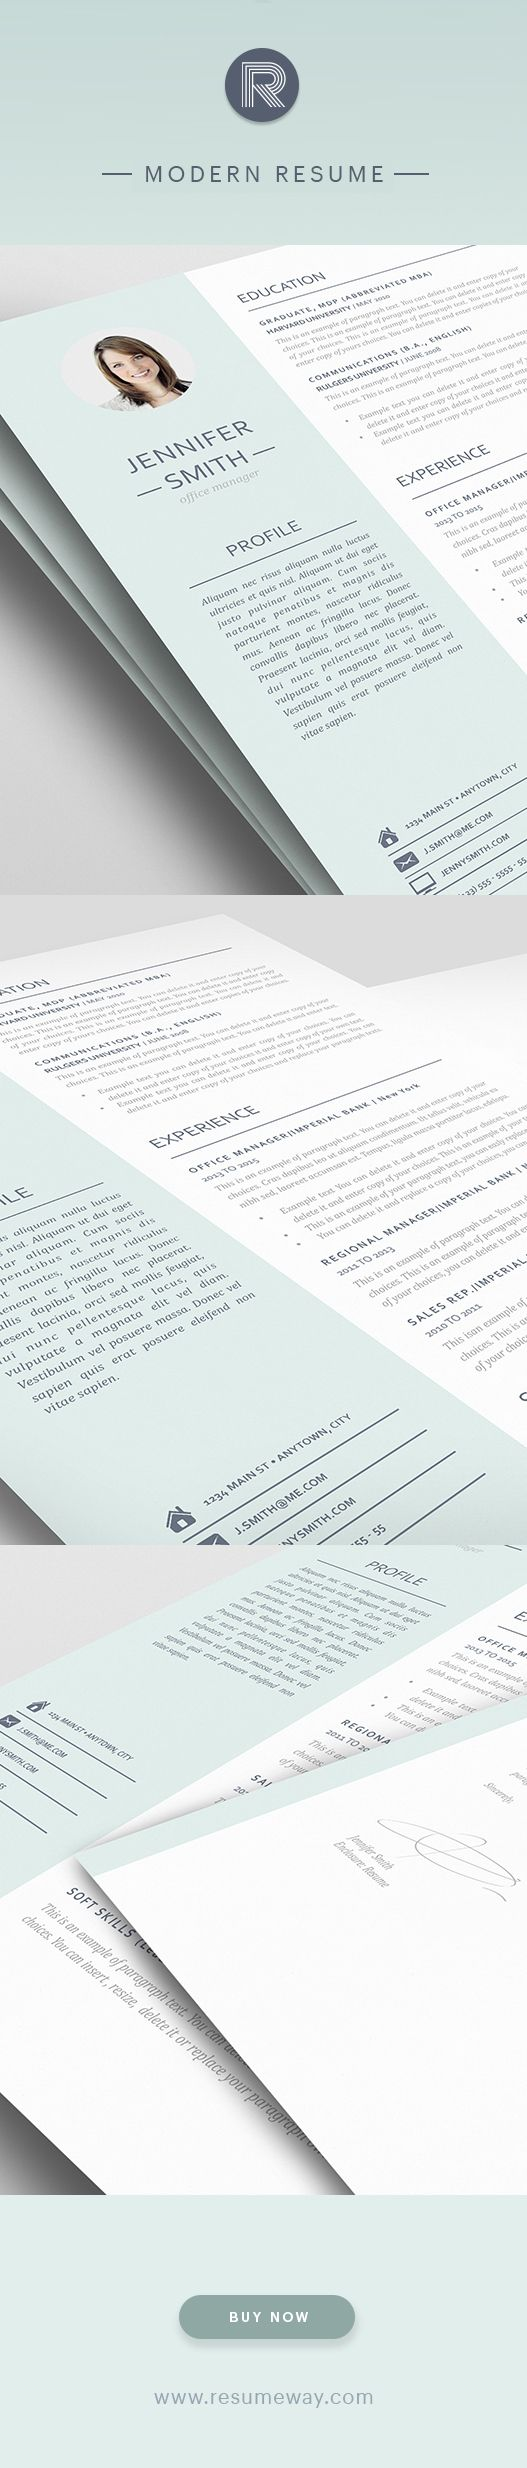 best images about modern resume templates modern resume template 110980 premium line of resume cover letter templates easy edit